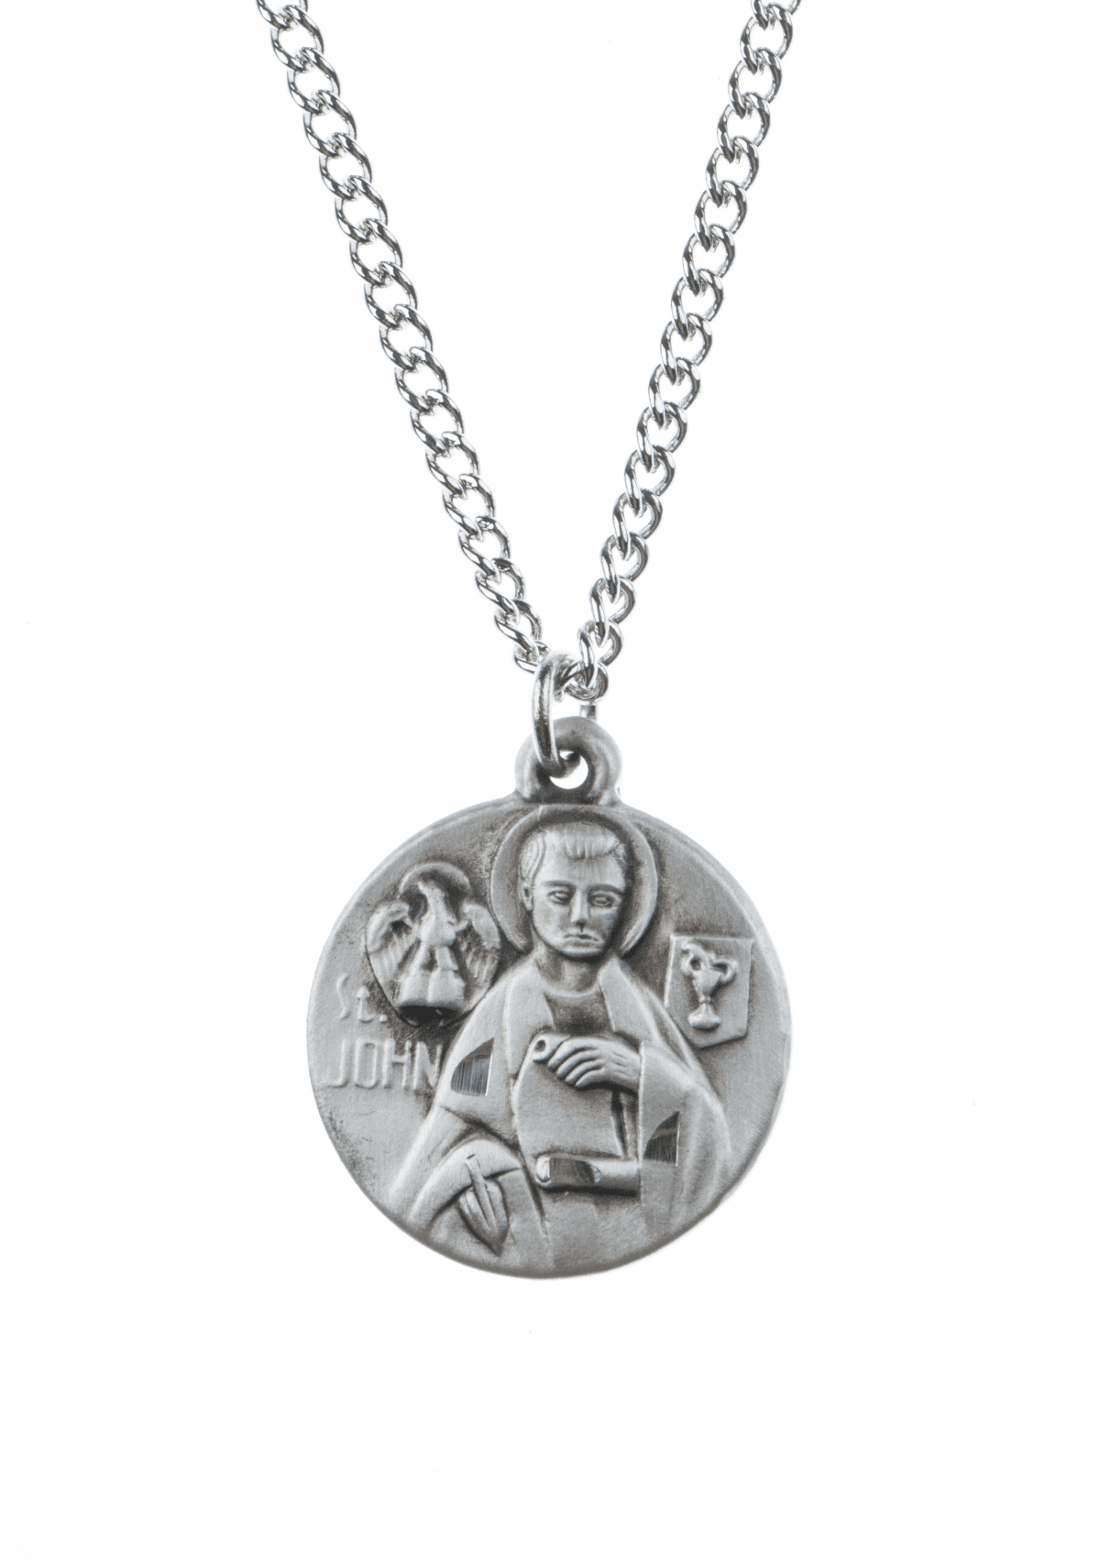 "St John Evangelist Saint Medal Pendant w/18"" Chain by Jeweled Cross"